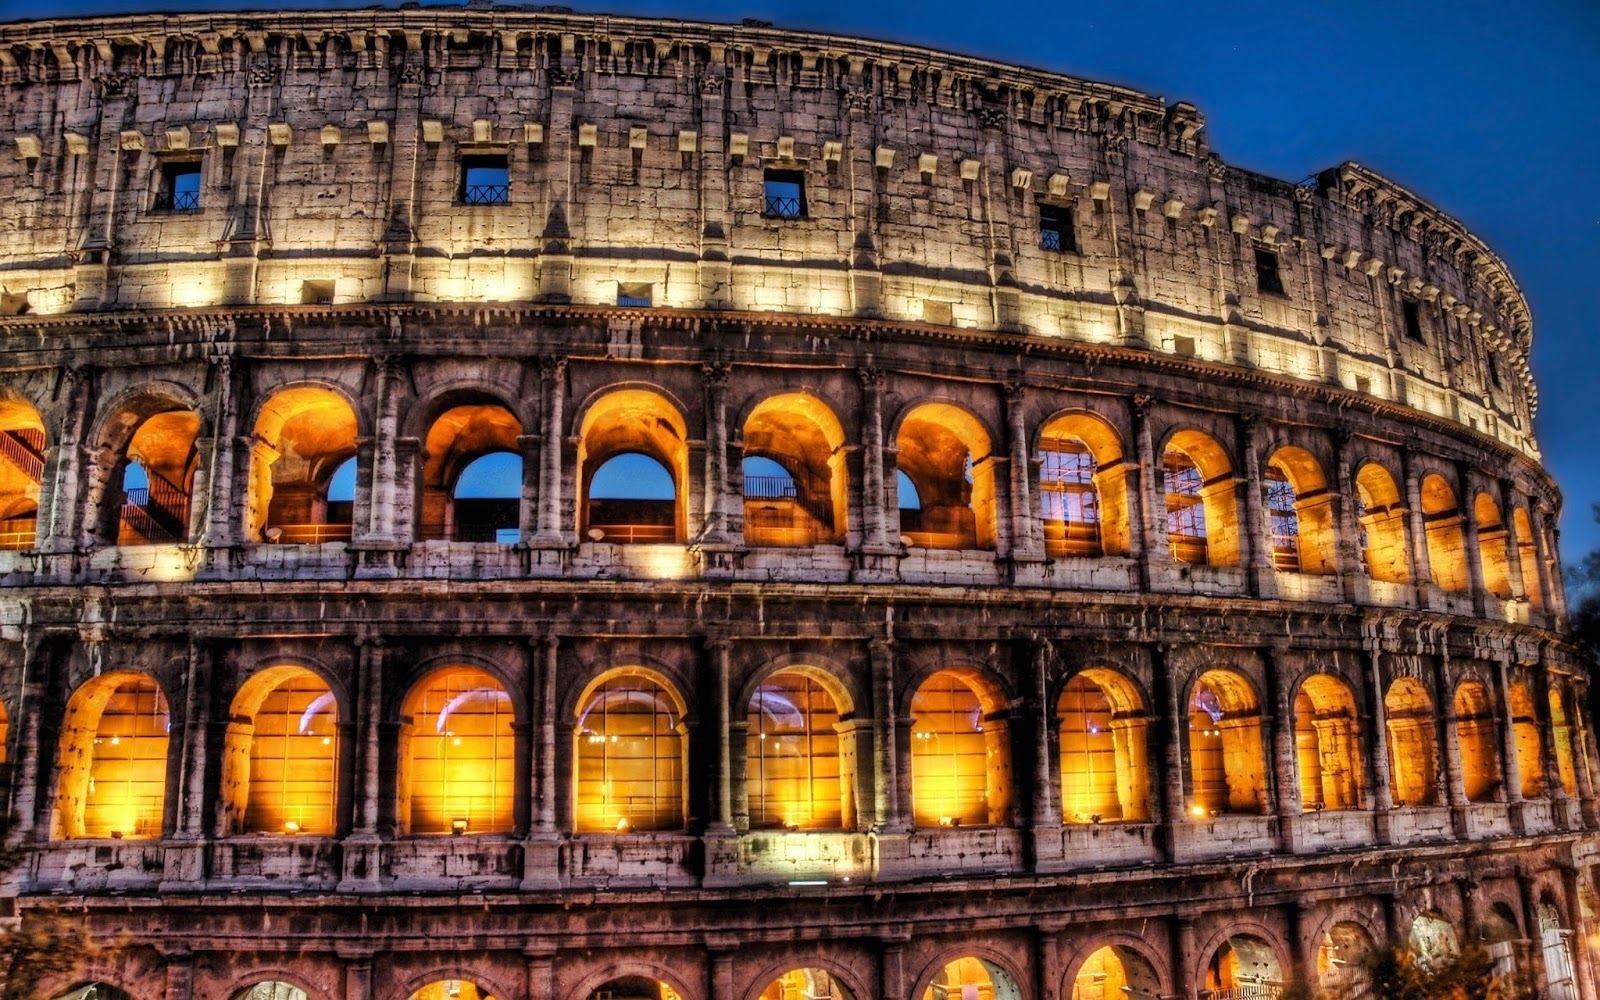 TOP 10 THE MOST VISITED PLACES : Colosseum